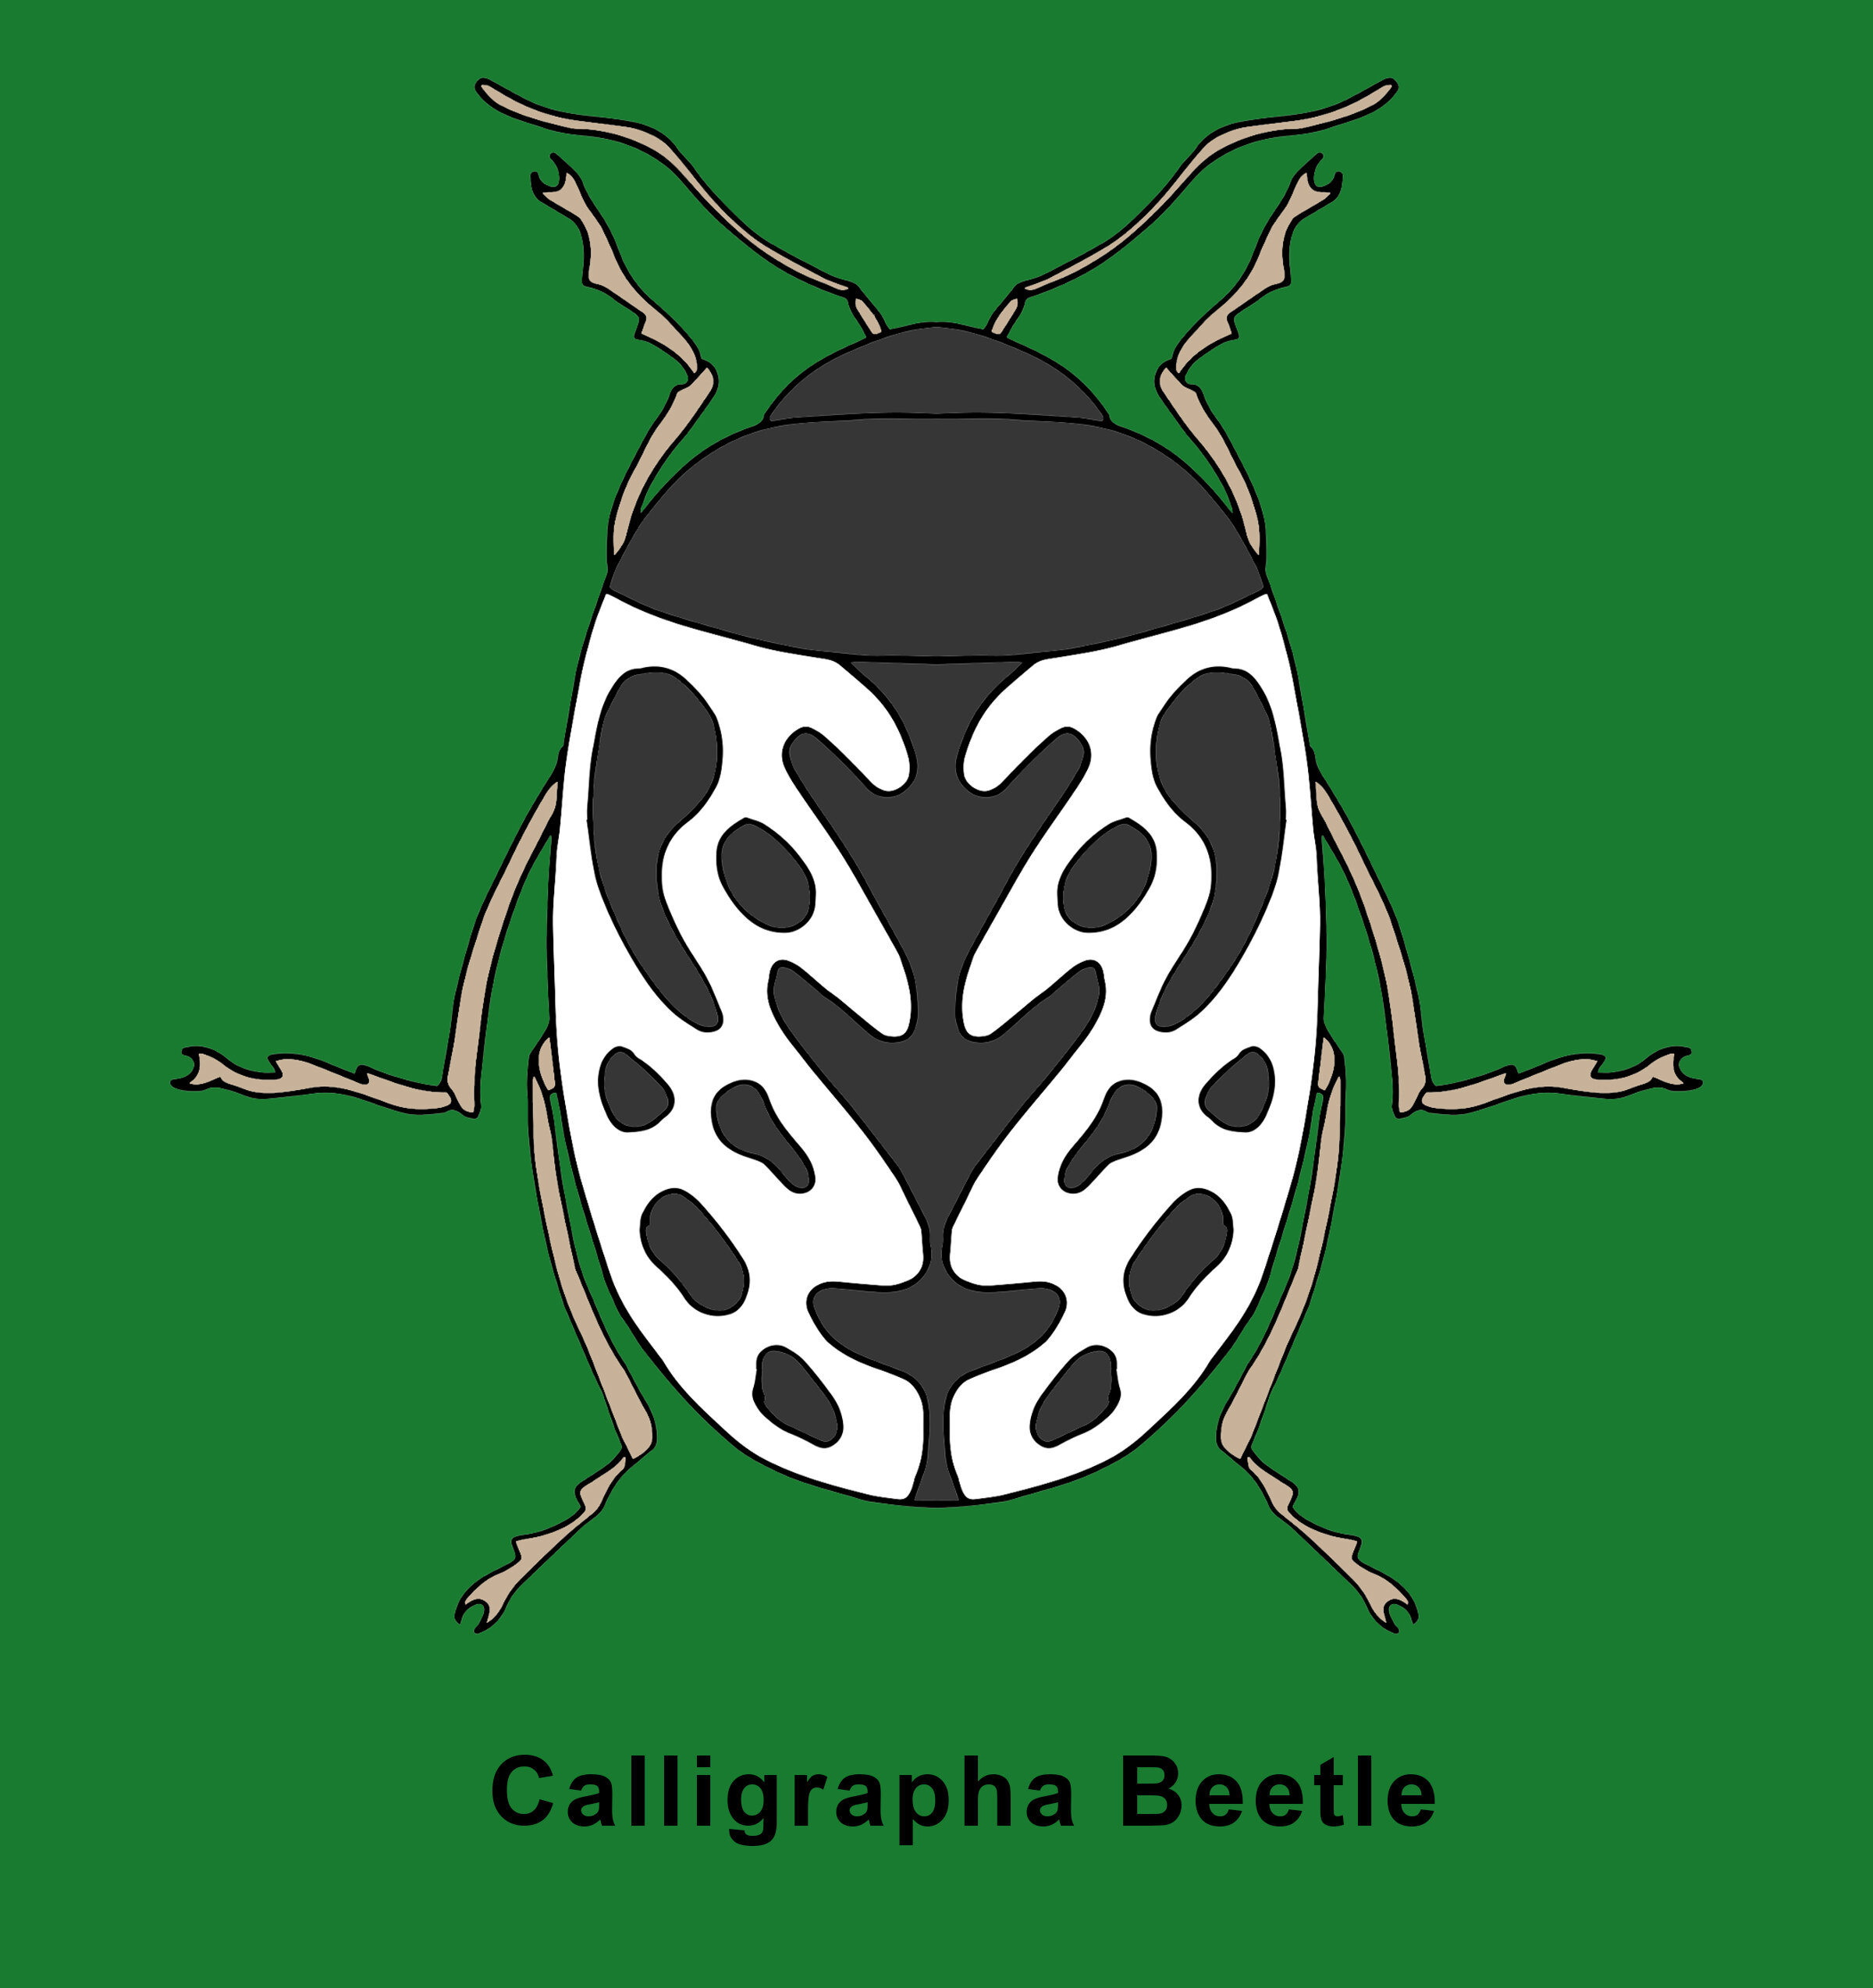 Calligrapha Beetle Finished.jpg